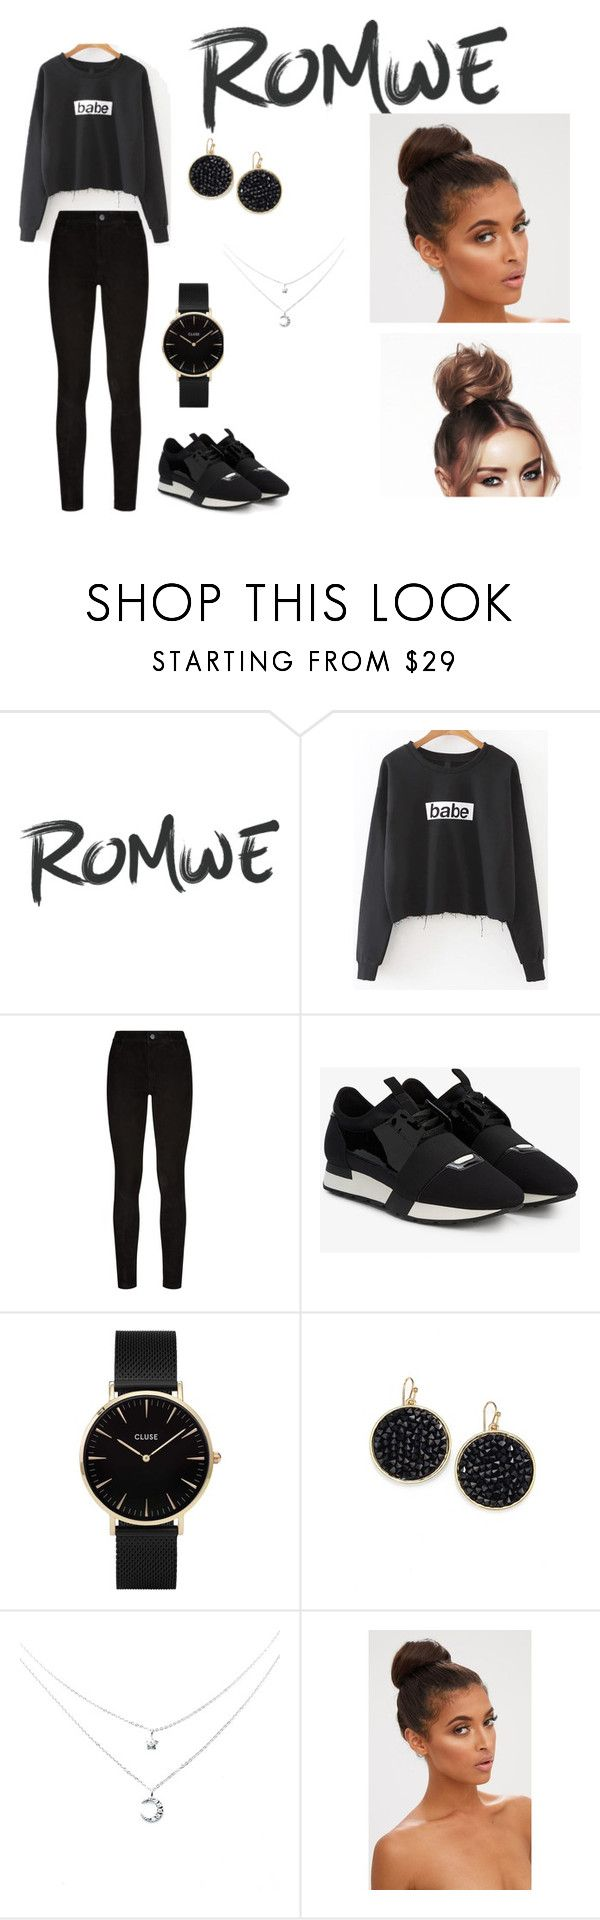 """""""rowne"""" by mariearisteau ❤ liked on Polyvore featuring Paige Denim, Balenciaga, CLUSE, ABS by Allen Schwartz and cute"""